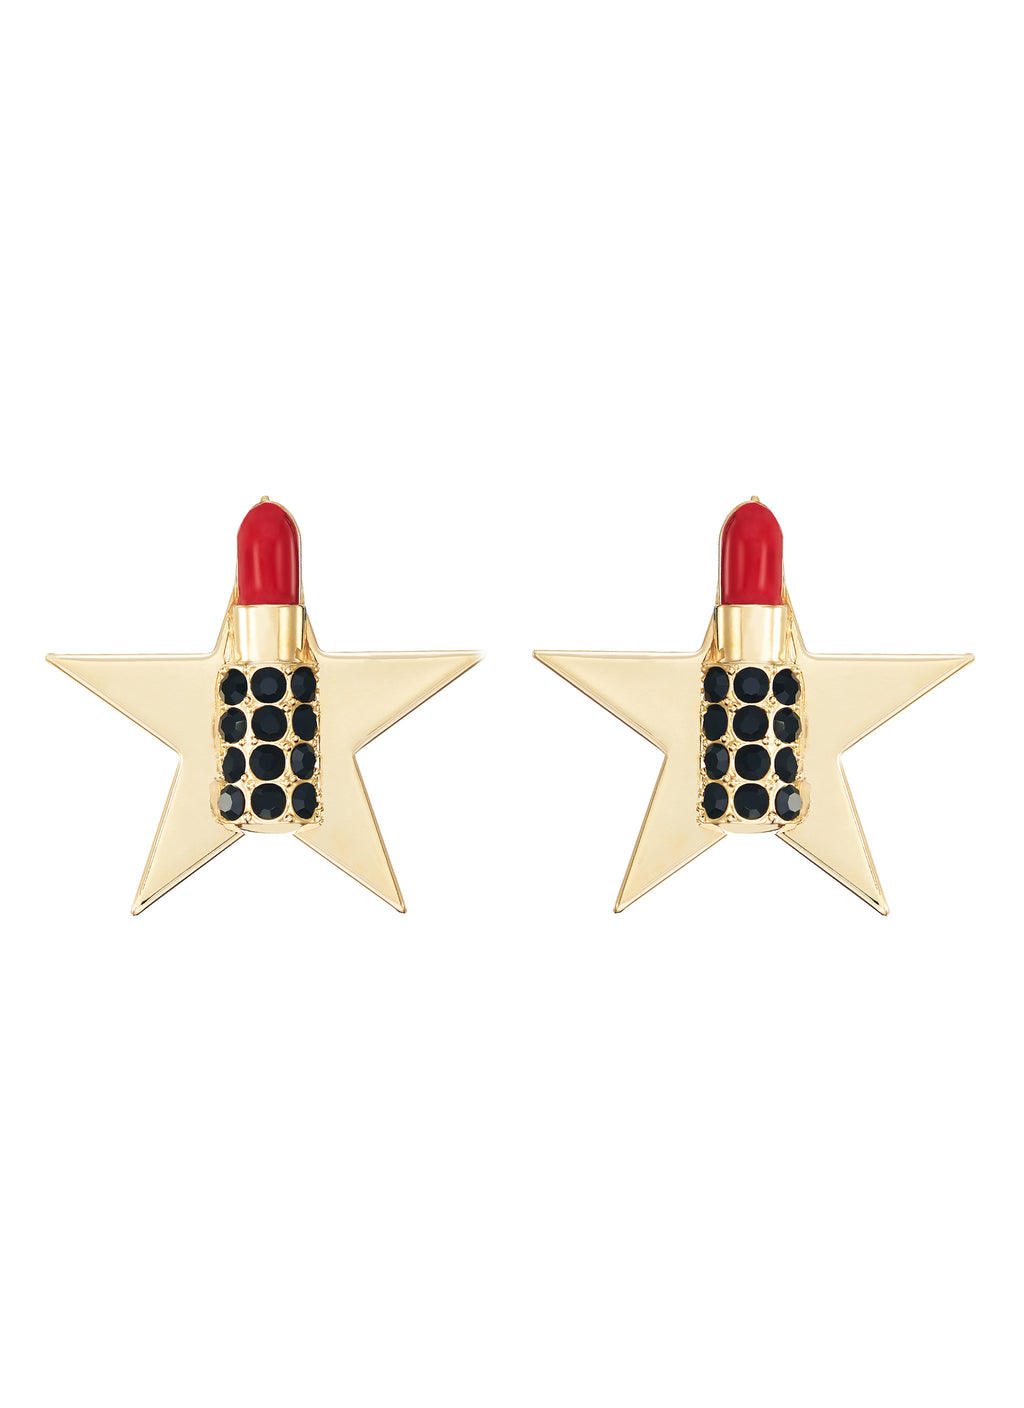 GLASS CRYSTAL LIPSTICK STAR EARRINGS